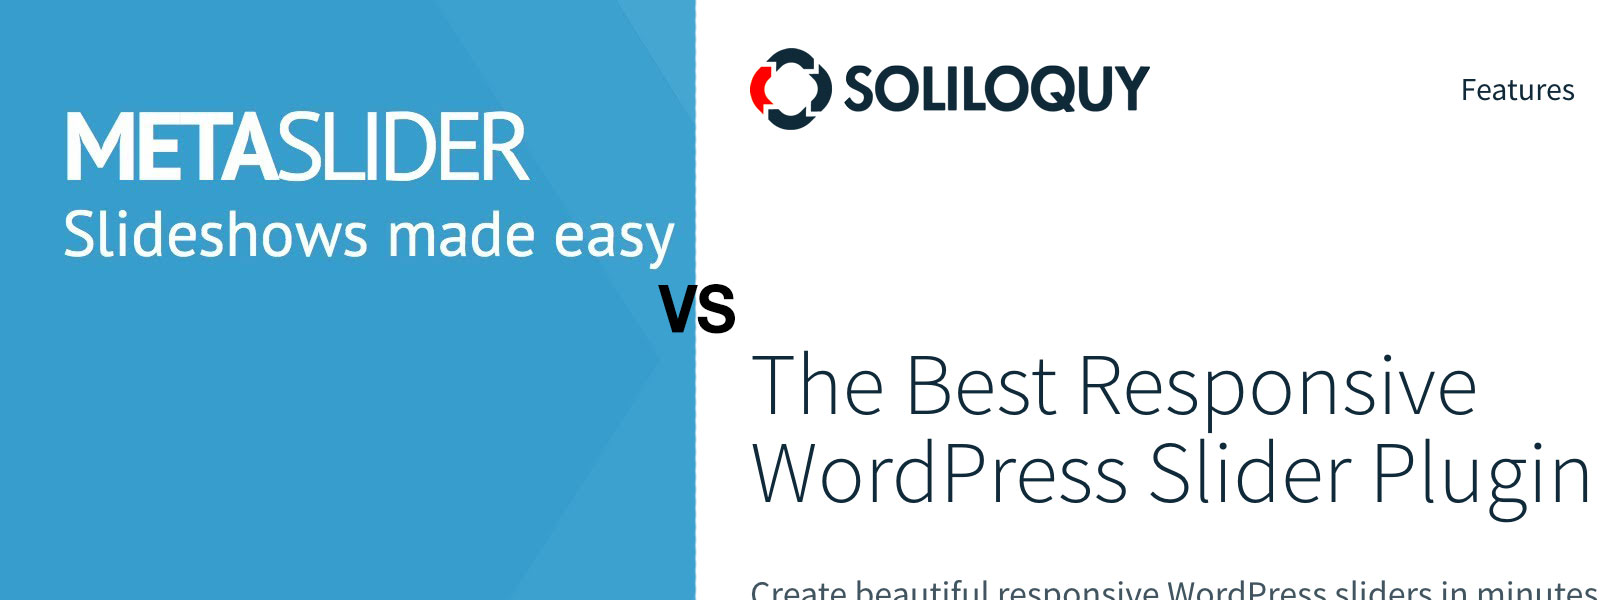 metaslider vs soliloquy slider plugins